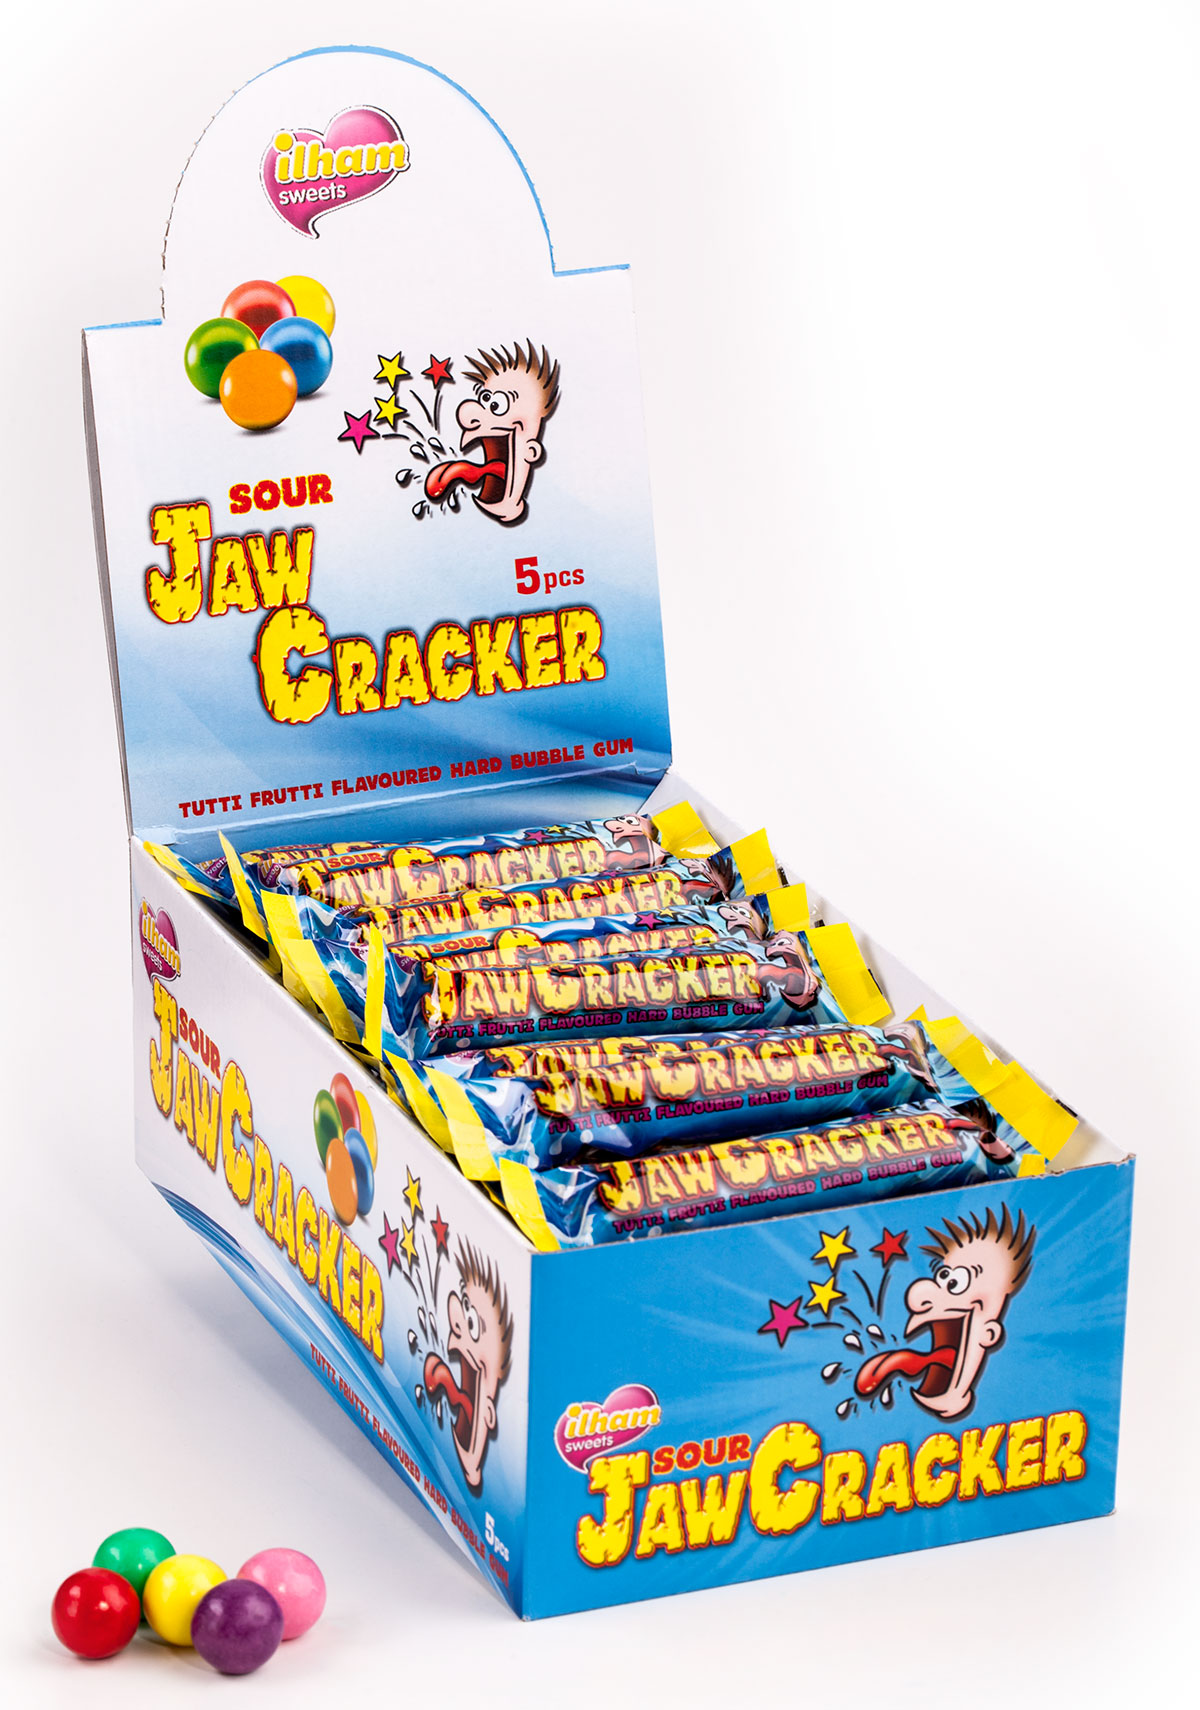 SUPER 5 - JAW CRACKER